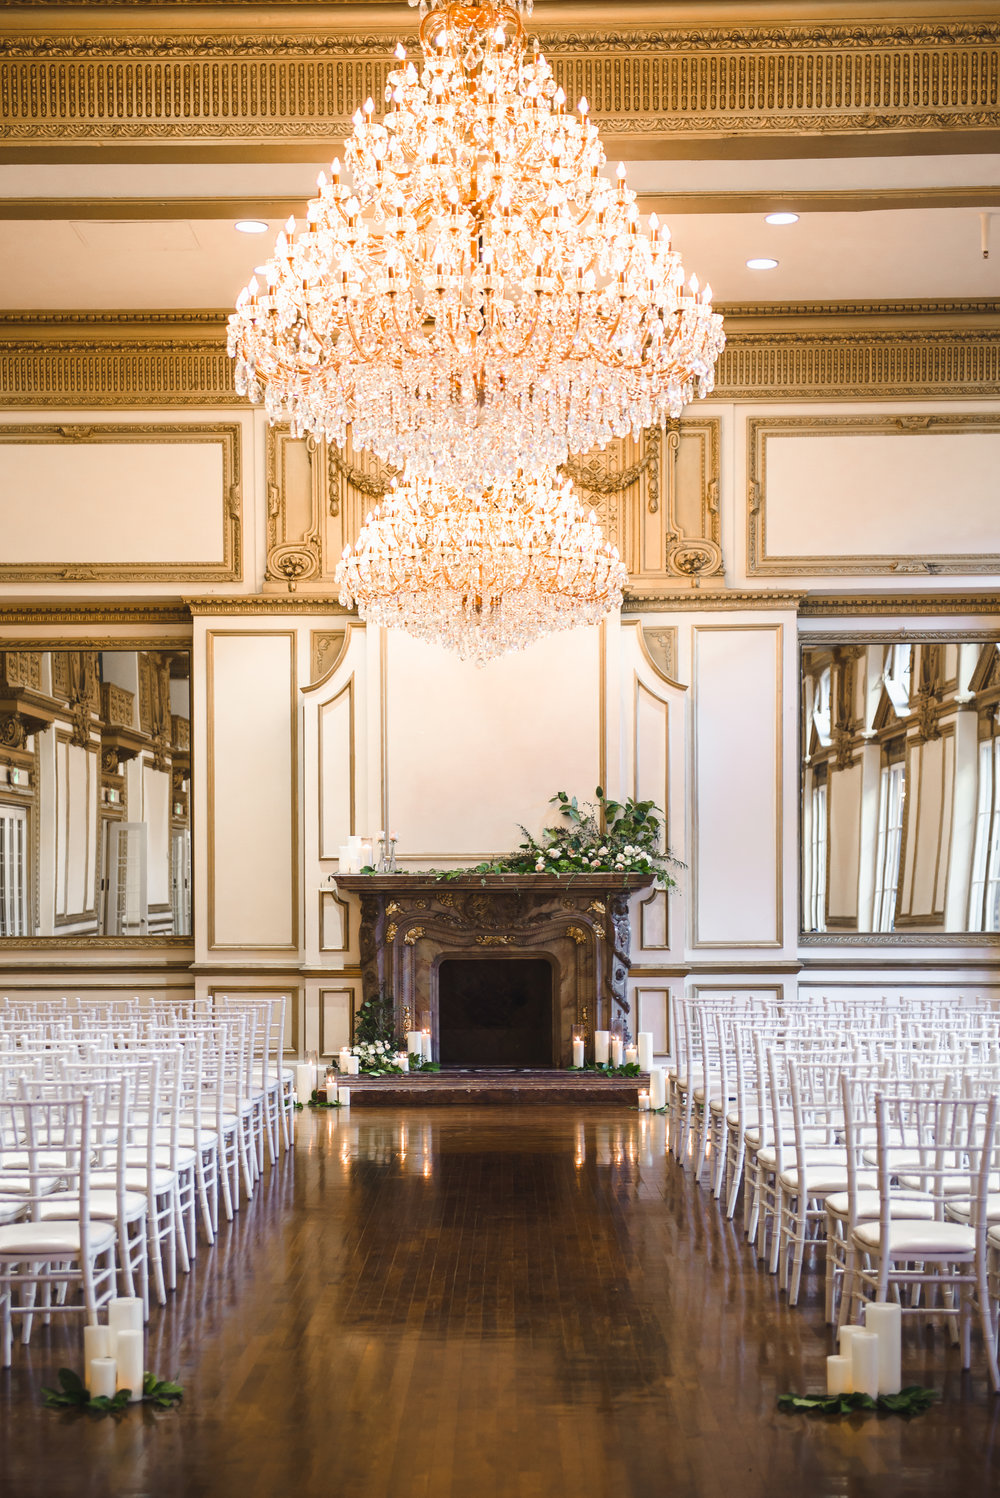 mantel florals for ceremony at Alexandria Ballroom #lrqcfloral #dtlawedding .jpg